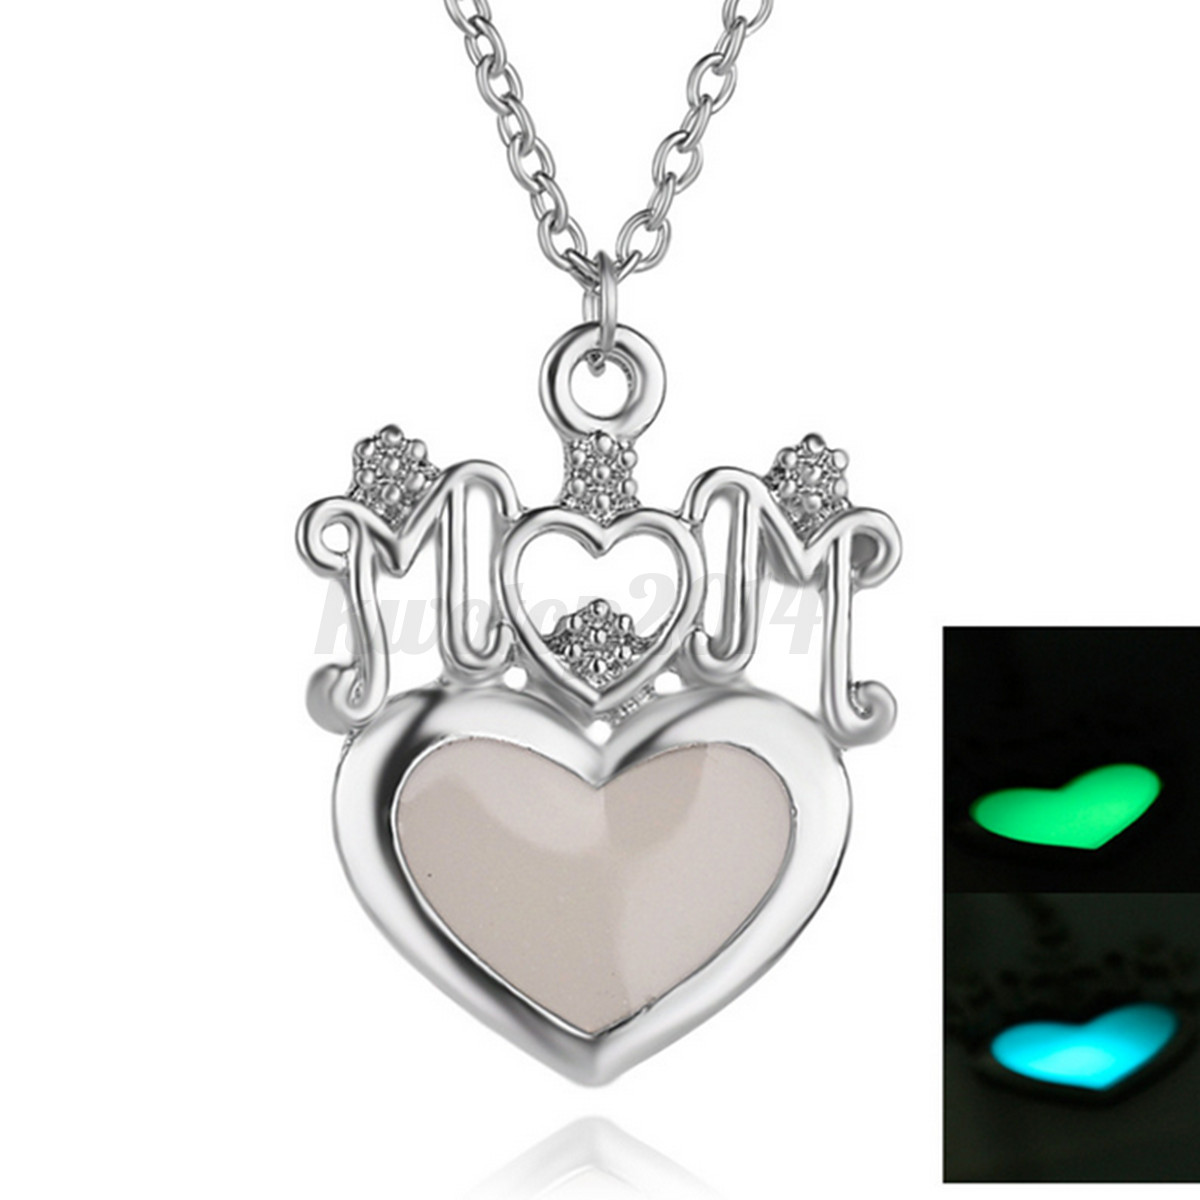 Heart MOM Luminous Necklace Mother's Day Birthday Gift for ...